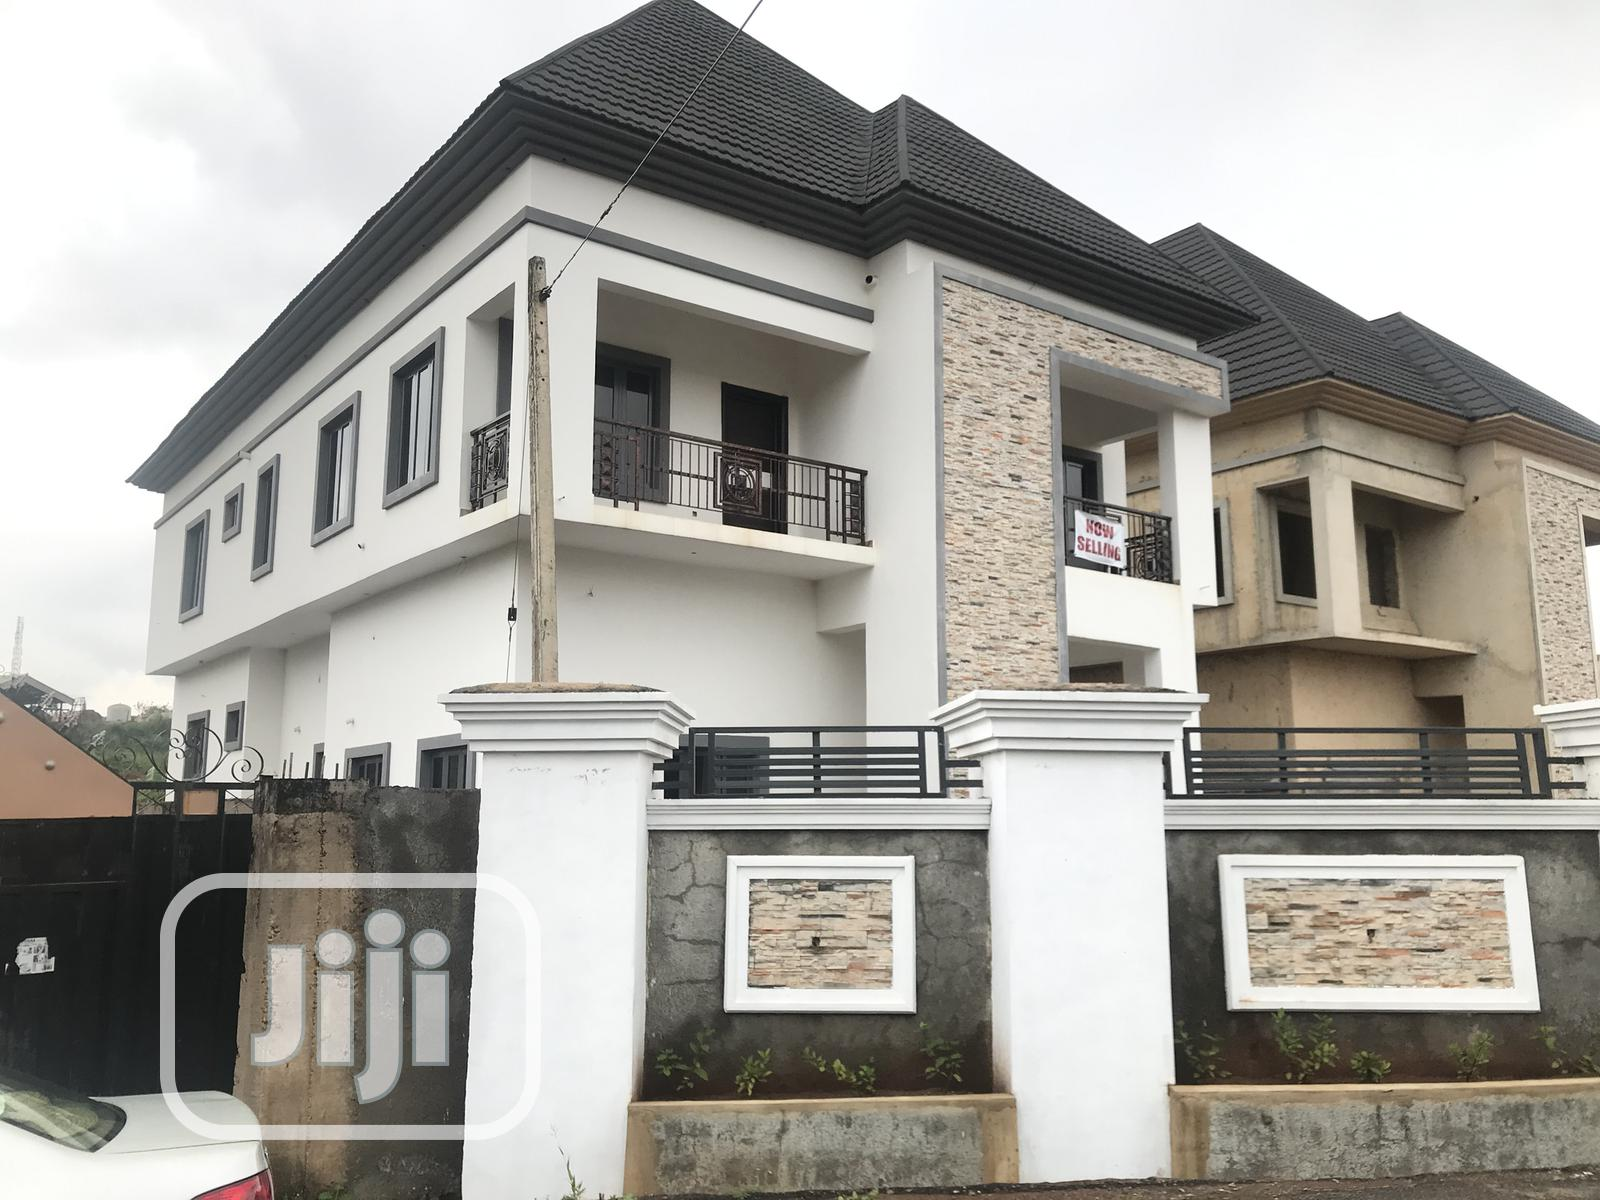 Newly Built 4-bedroom Detached House With BQ, Golf Estate 1 | Houses & Apartments For Sale for sale in Enugu, Enugu State, Nigeria